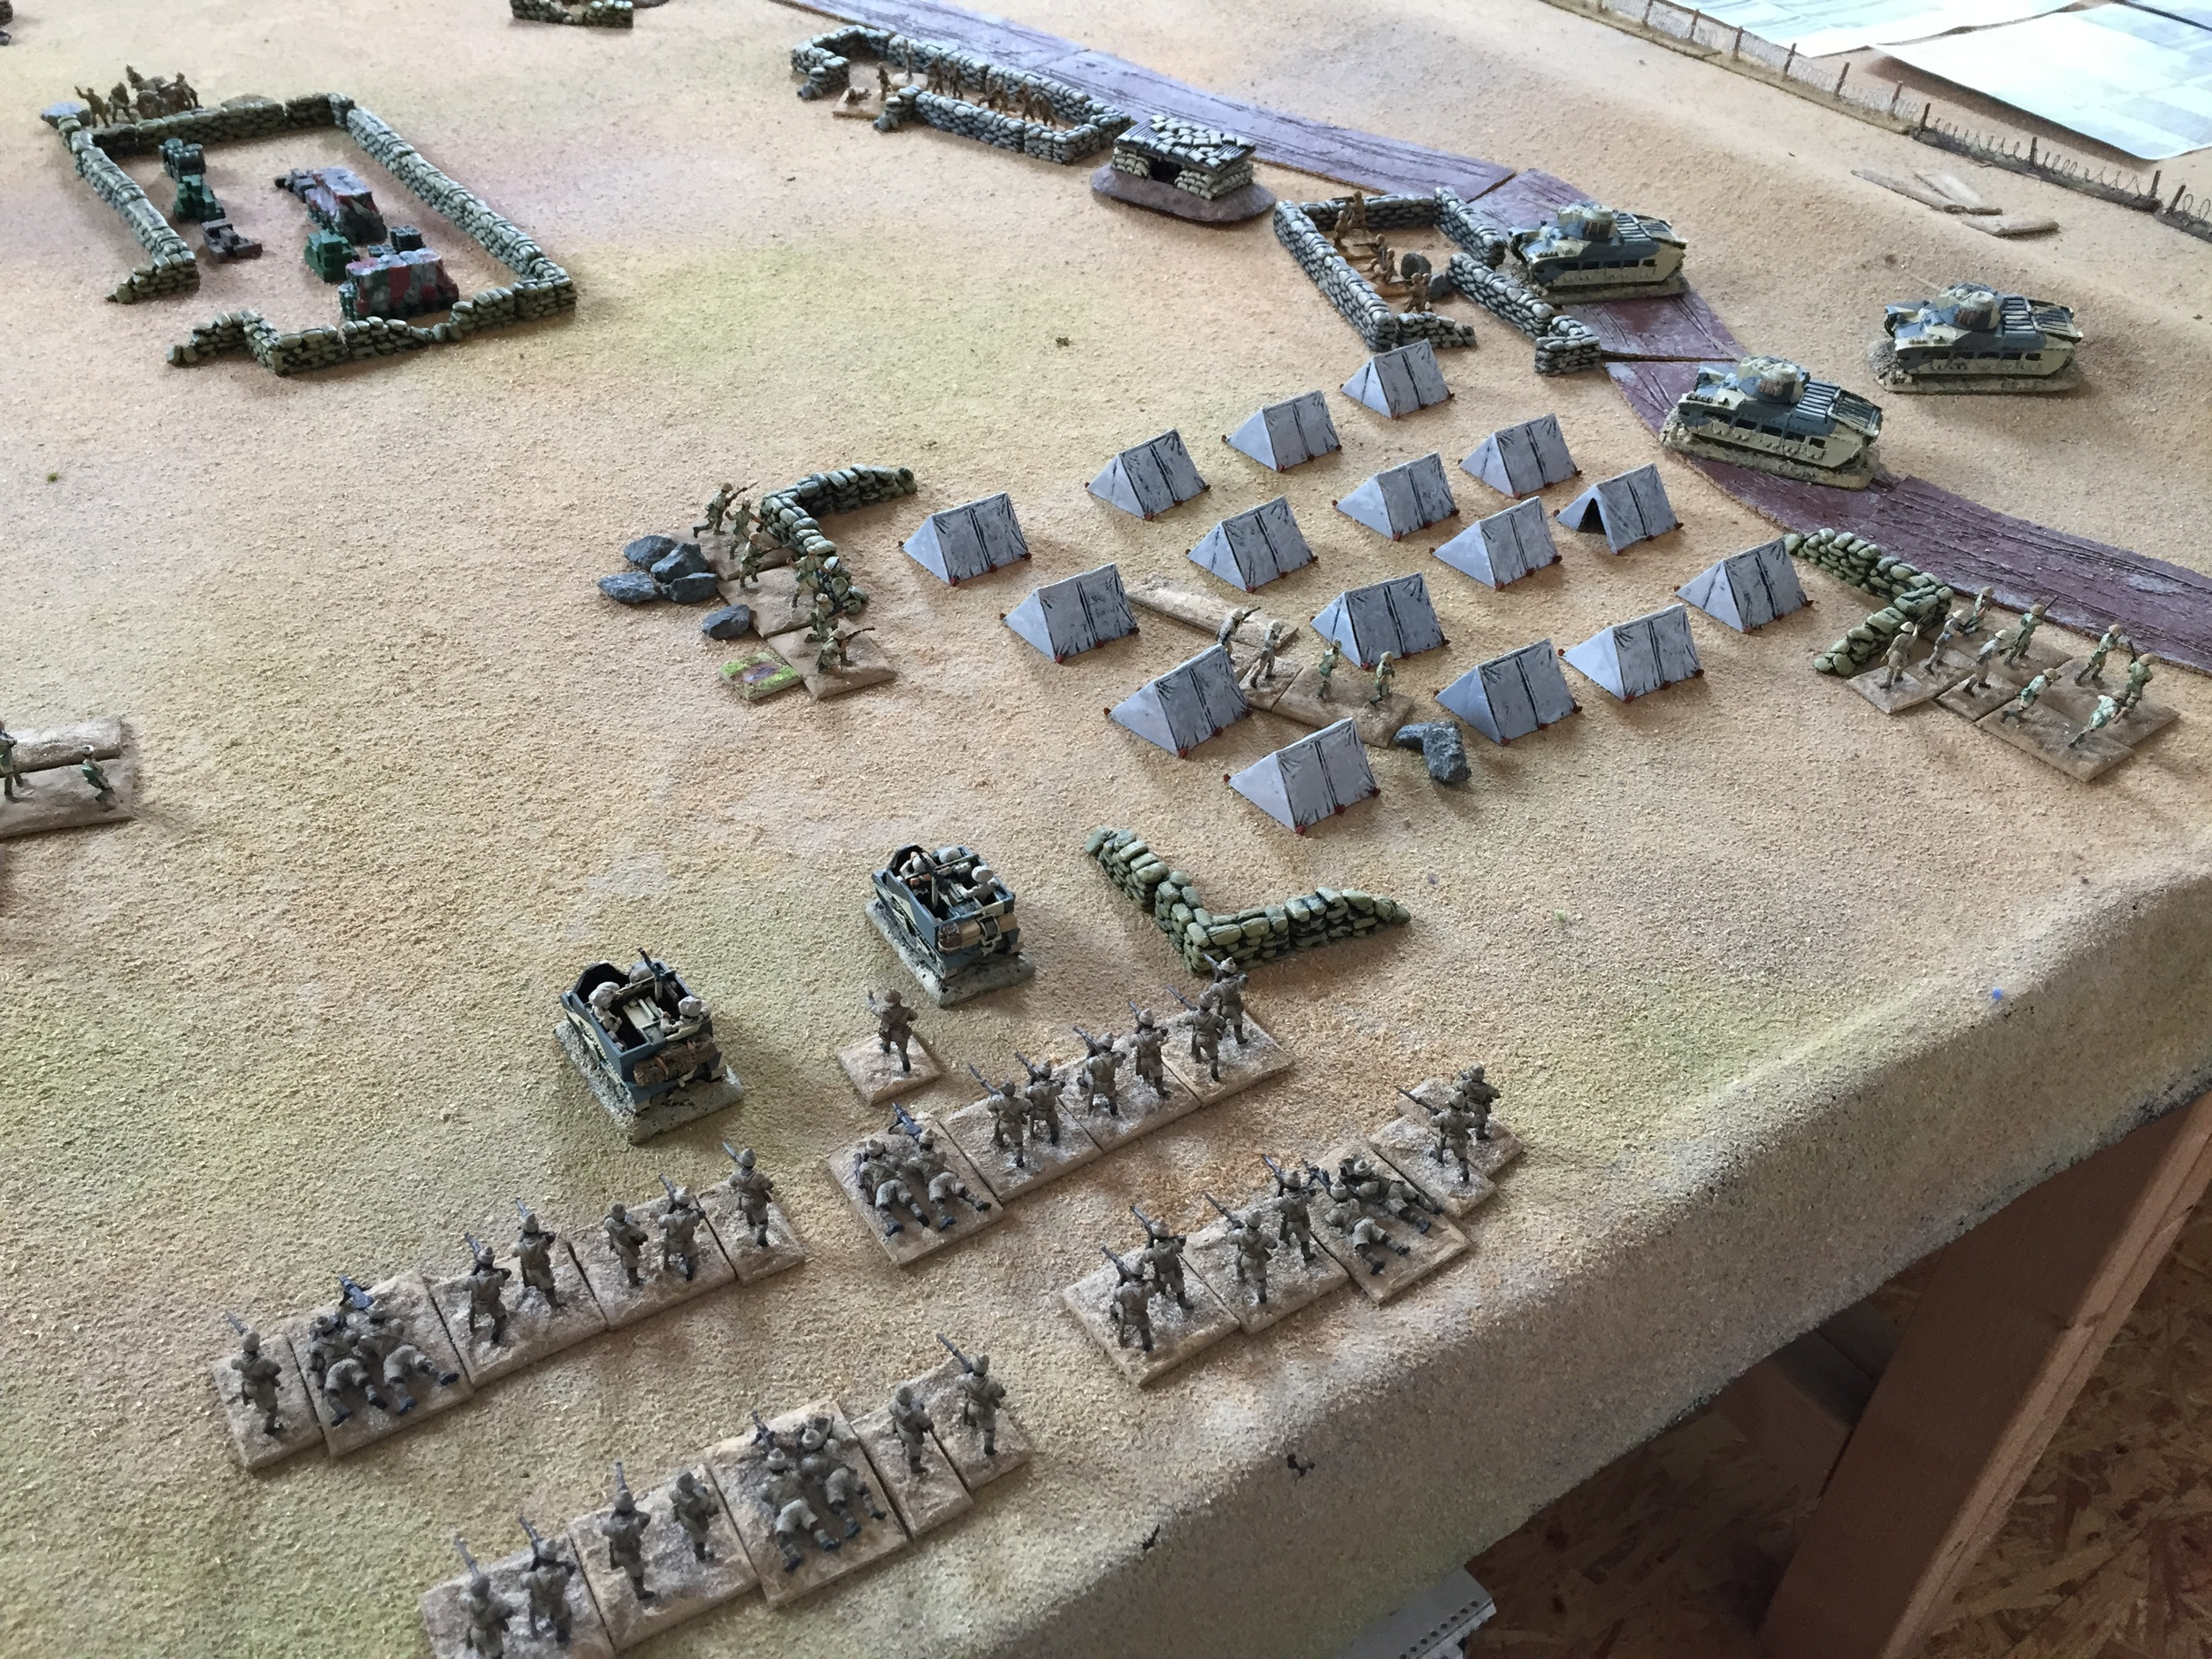 Elias throws another 6 and on comes a company of Indian infantry